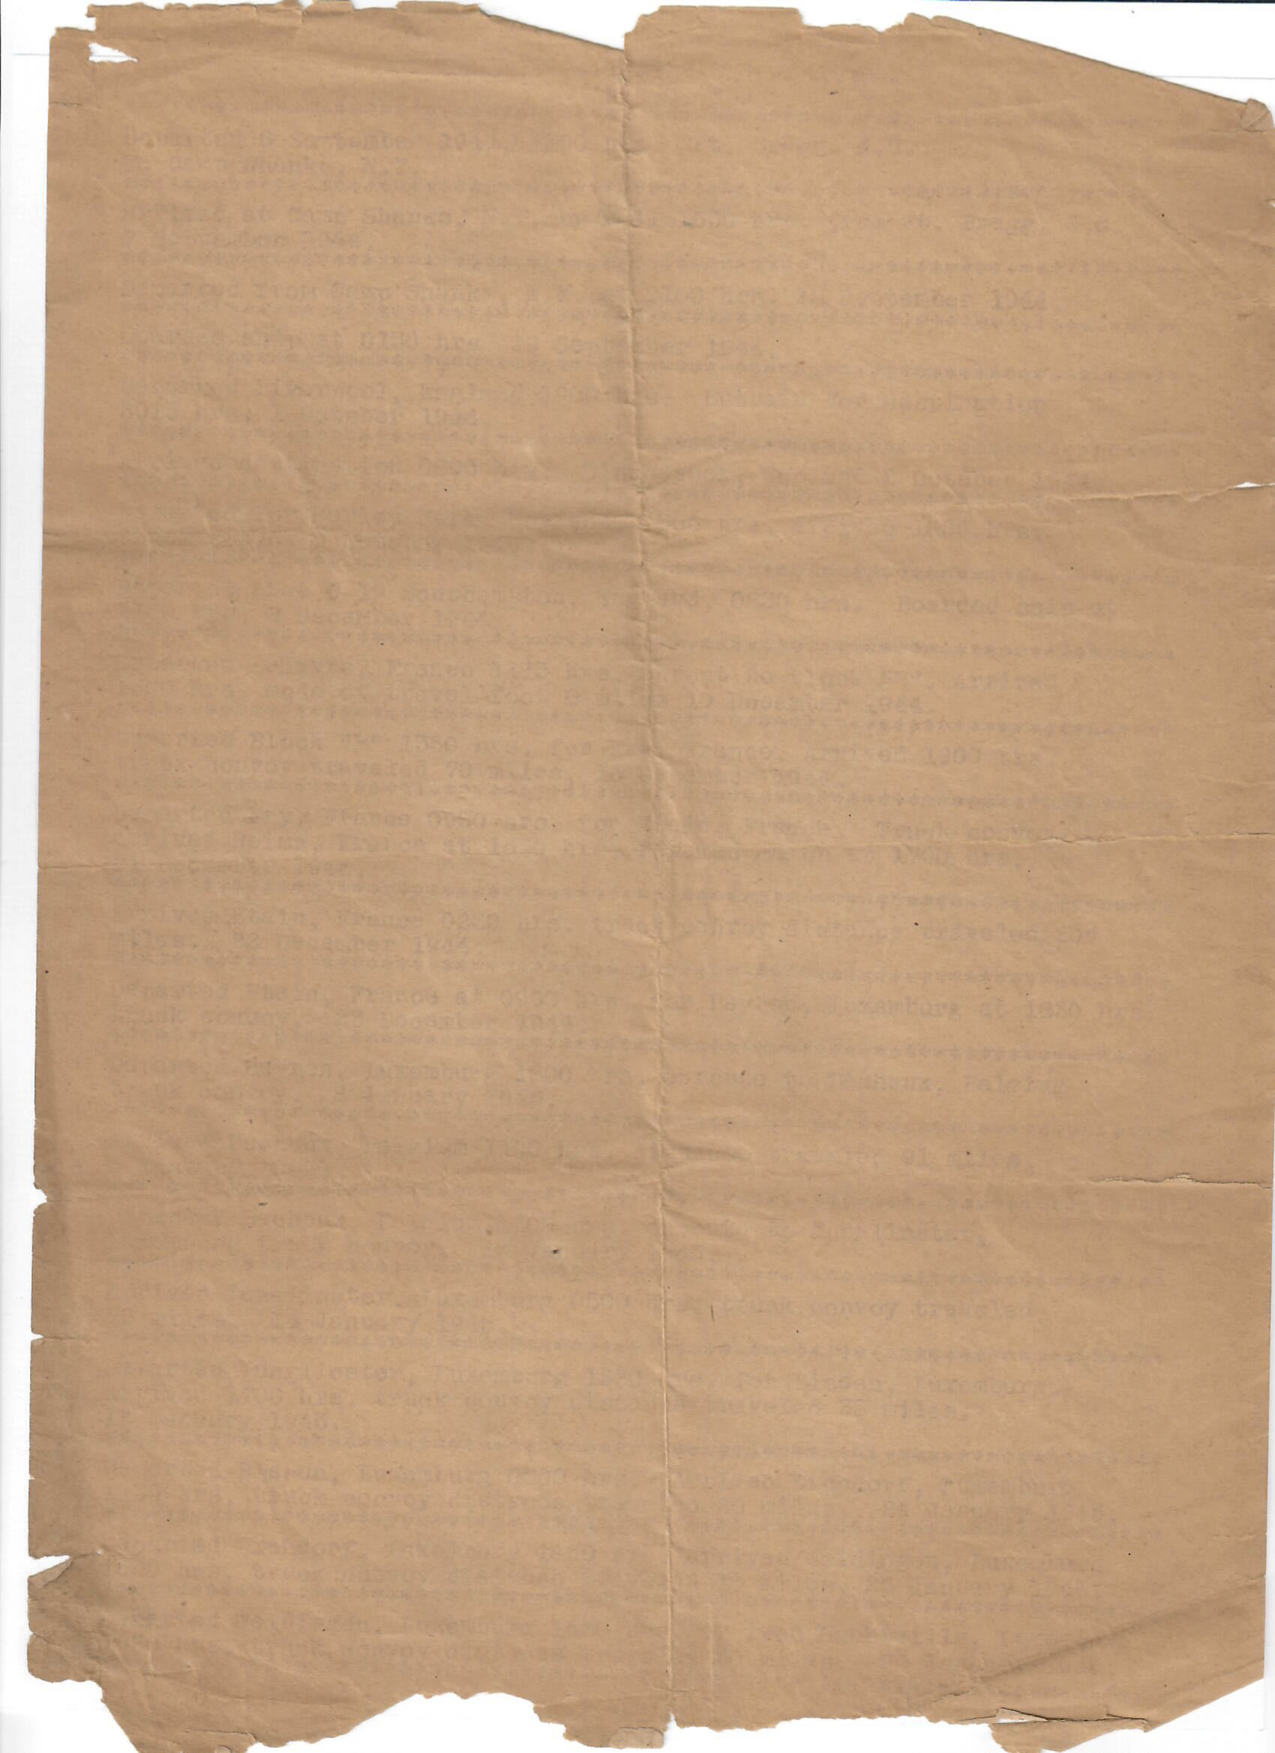 Three pages from Separation Document